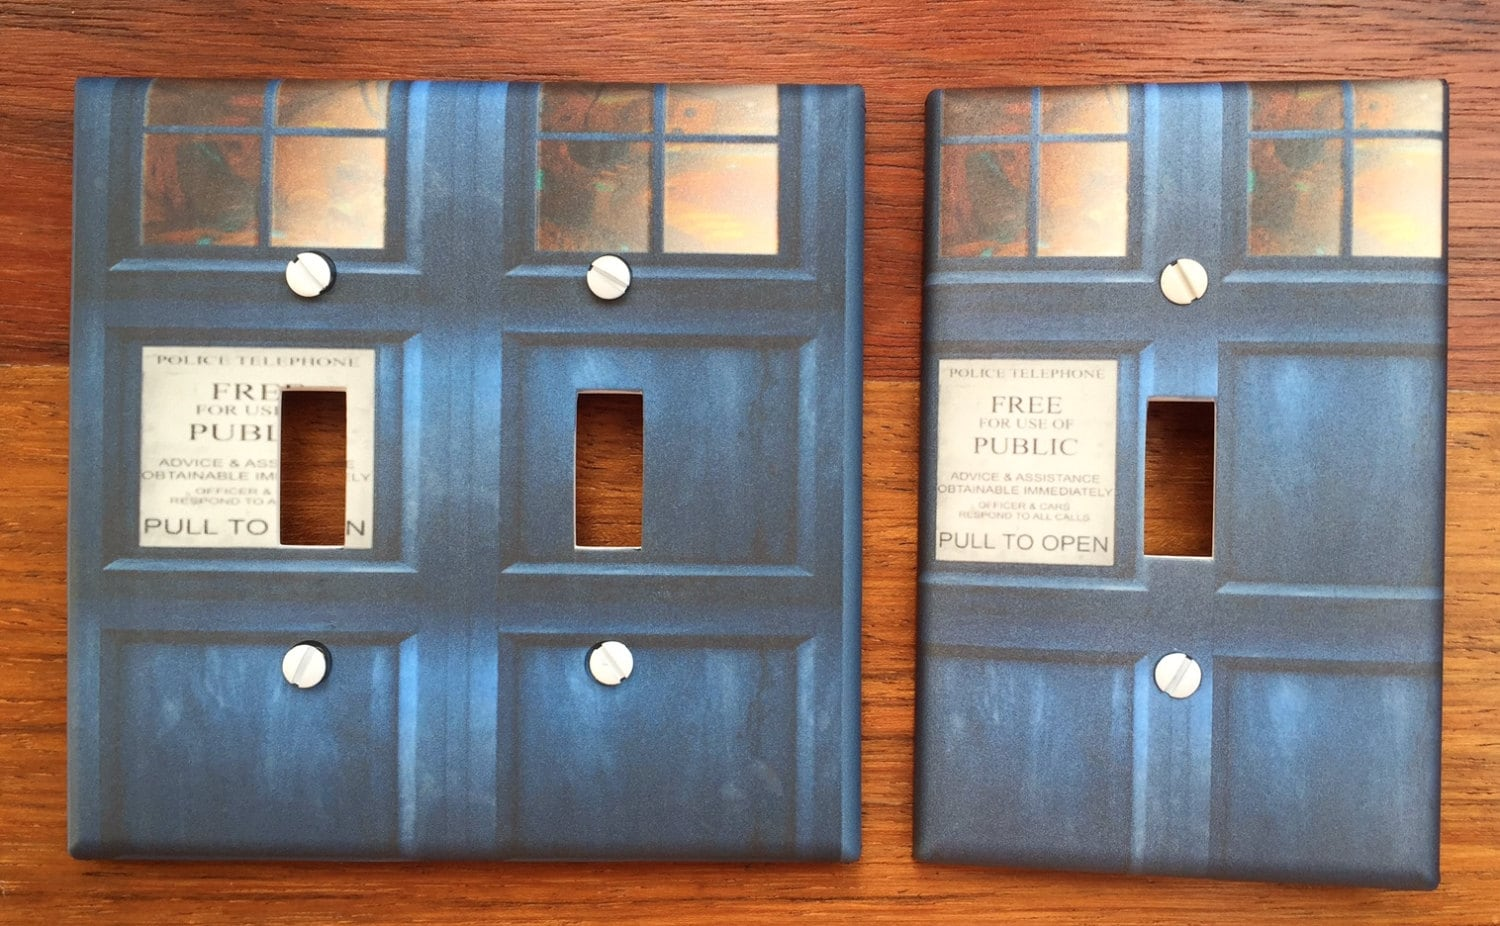 Doctor who light switch cover whovian tardis door dwas fandom for Tardis light switch cover